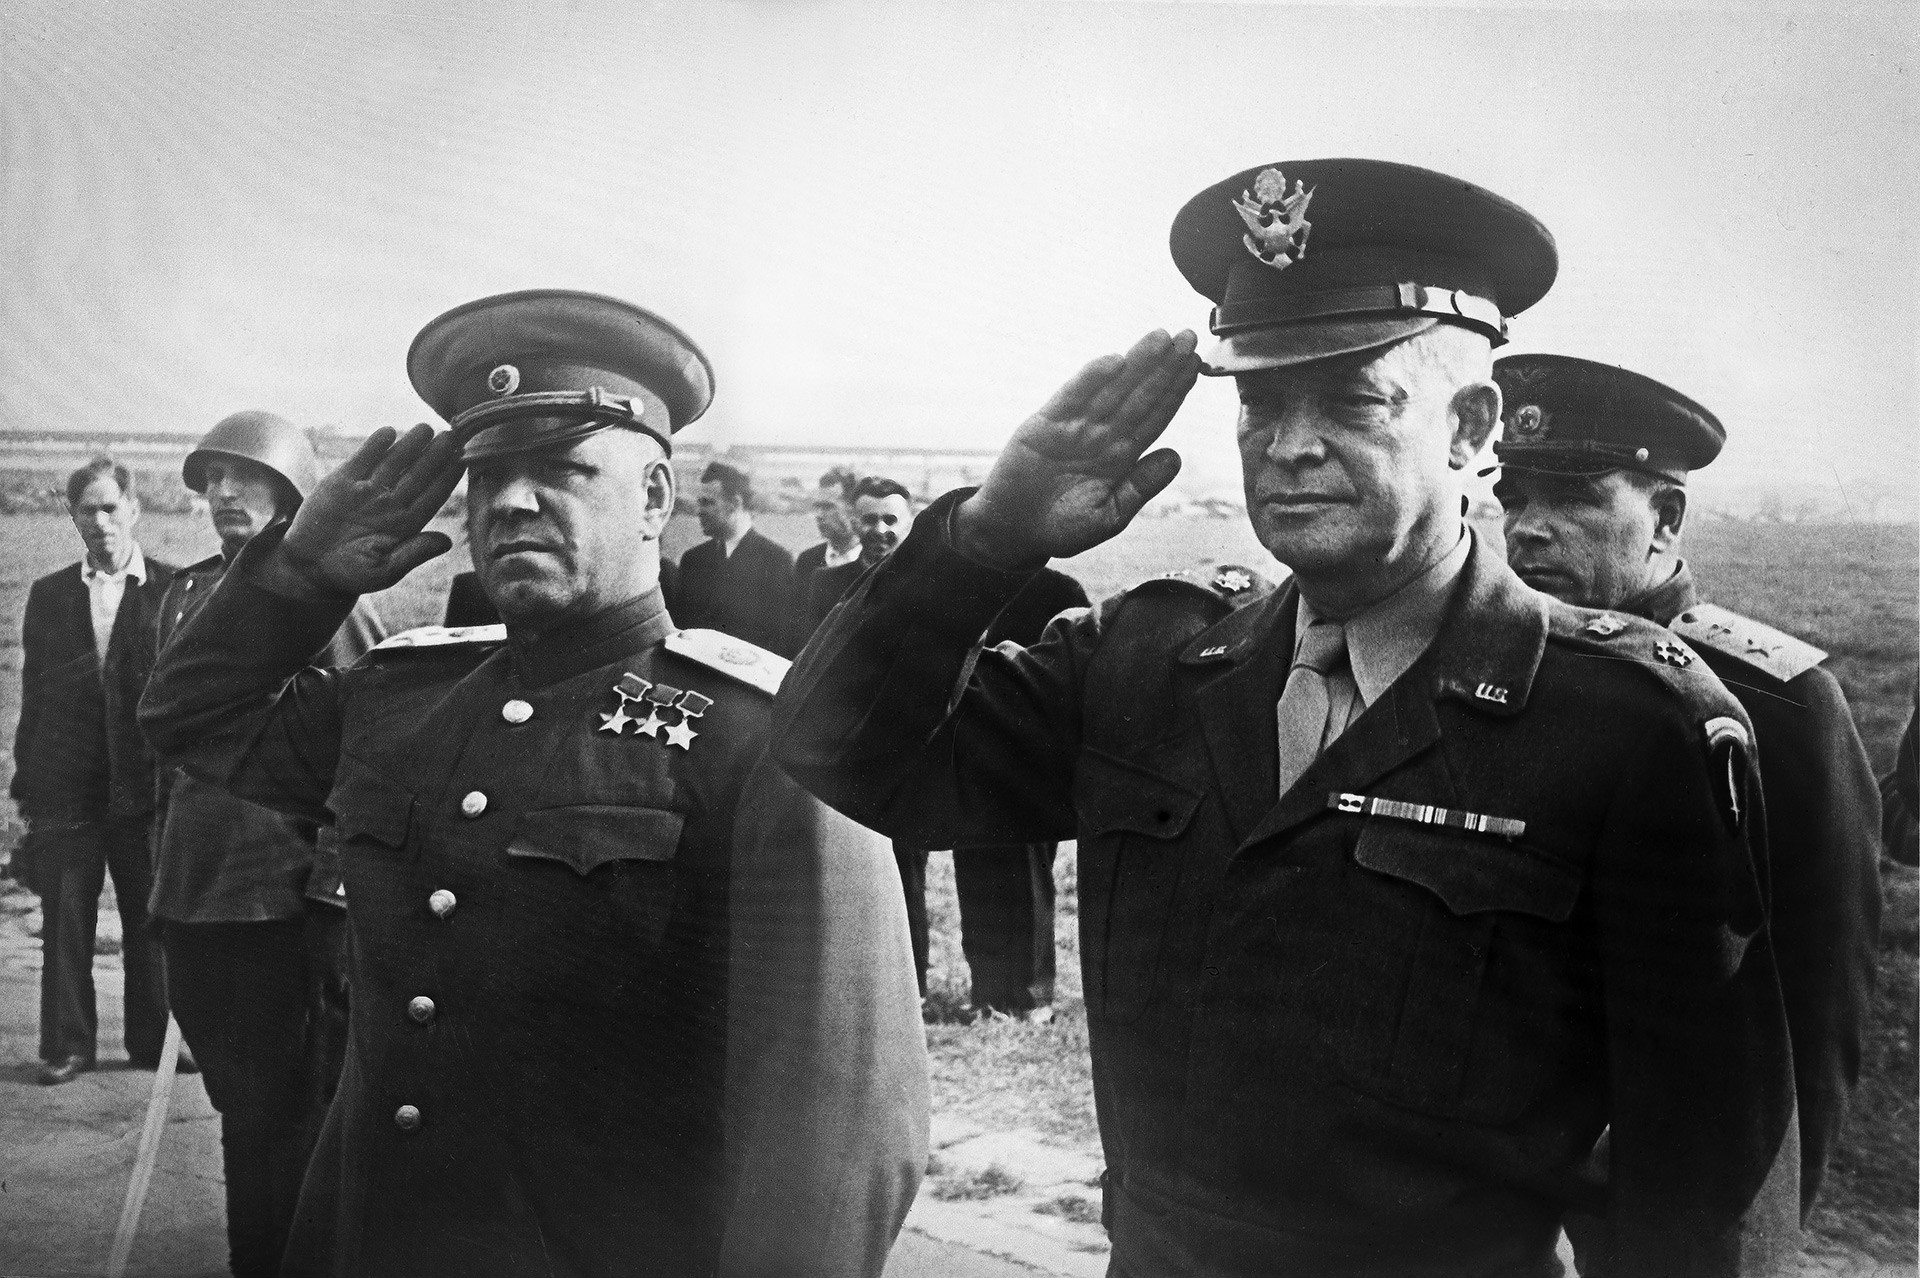 Maršal Georgij Žukov i general Dwight Eisenhower u Moskvi